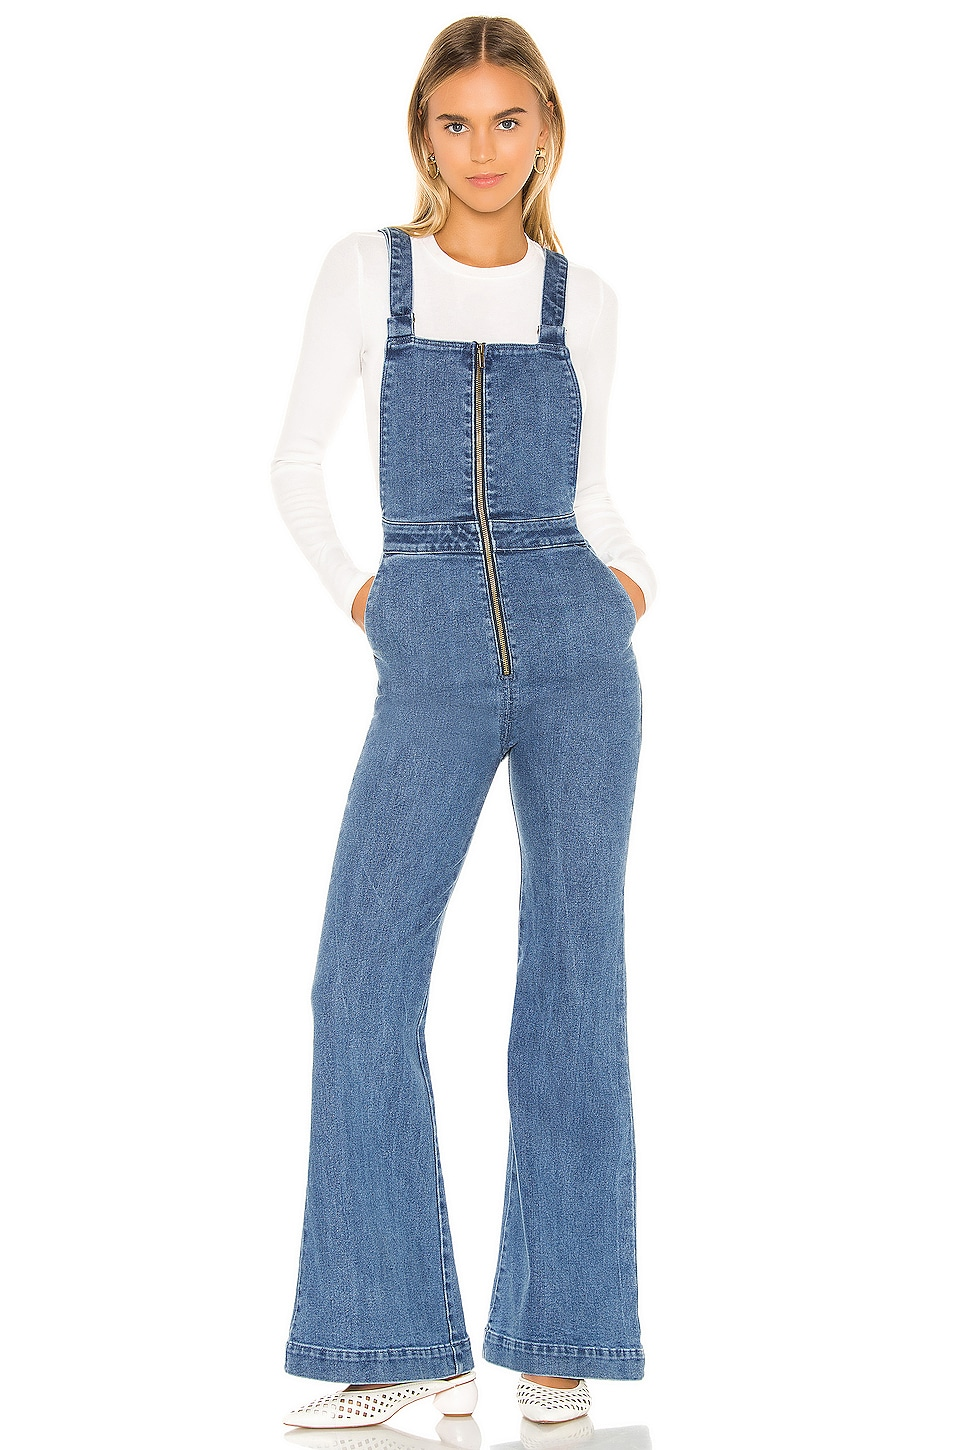 ROLLA'S Eastcoast Flare Overall in Eco Judy Blue